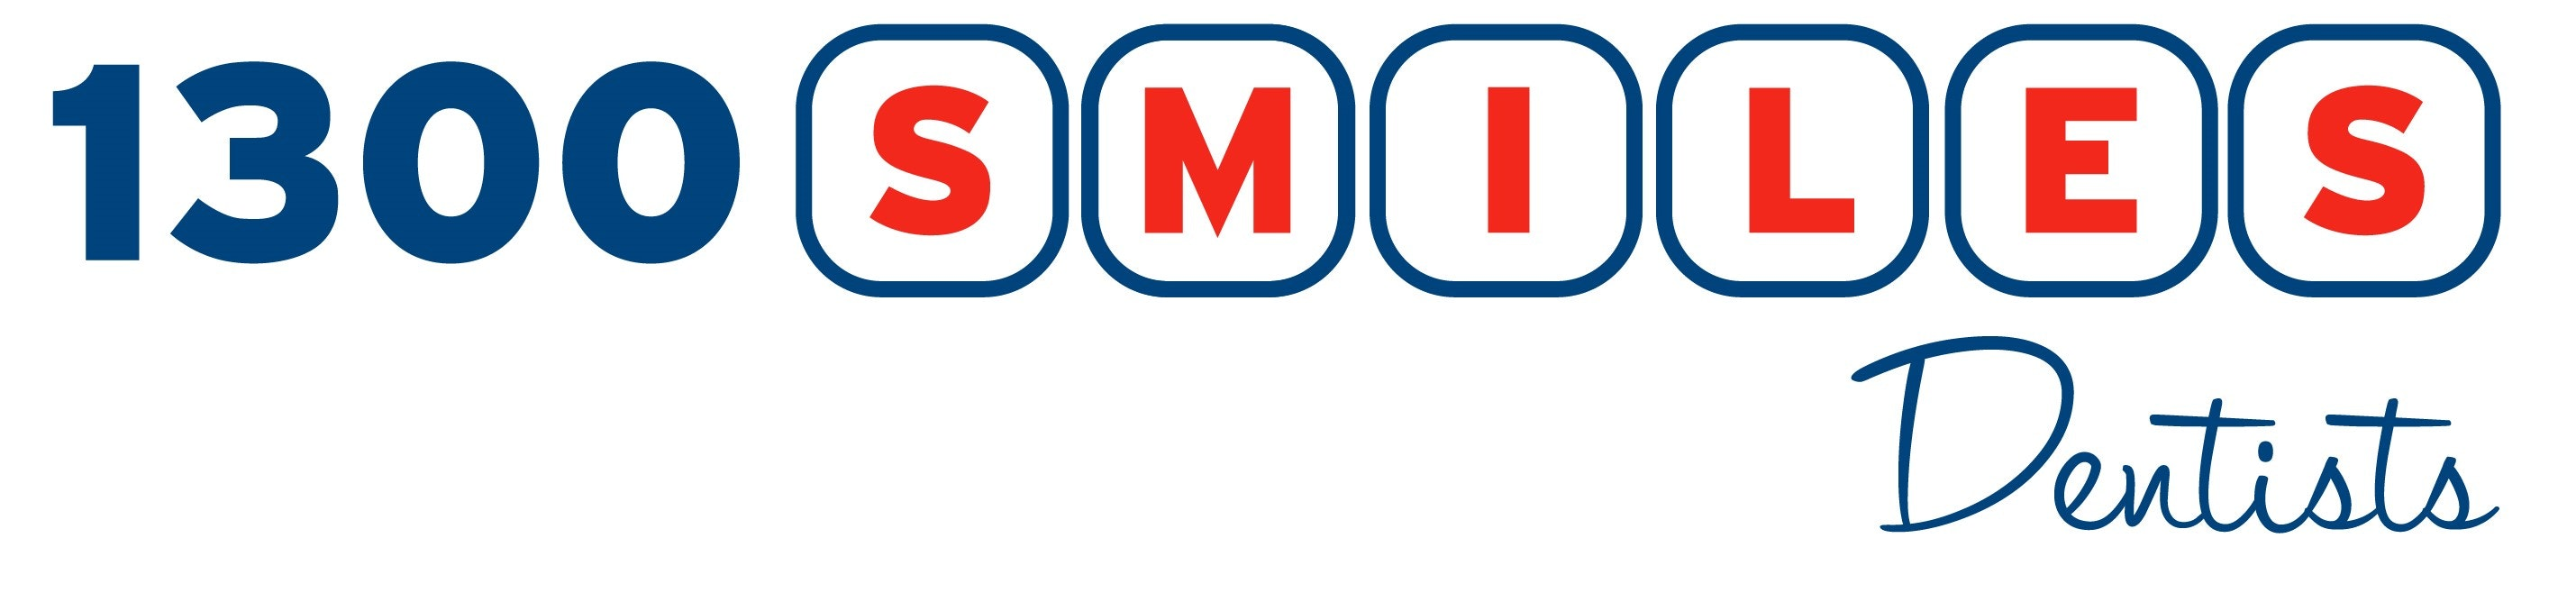 logo for 1300 Smiles - Townsville City Dentists